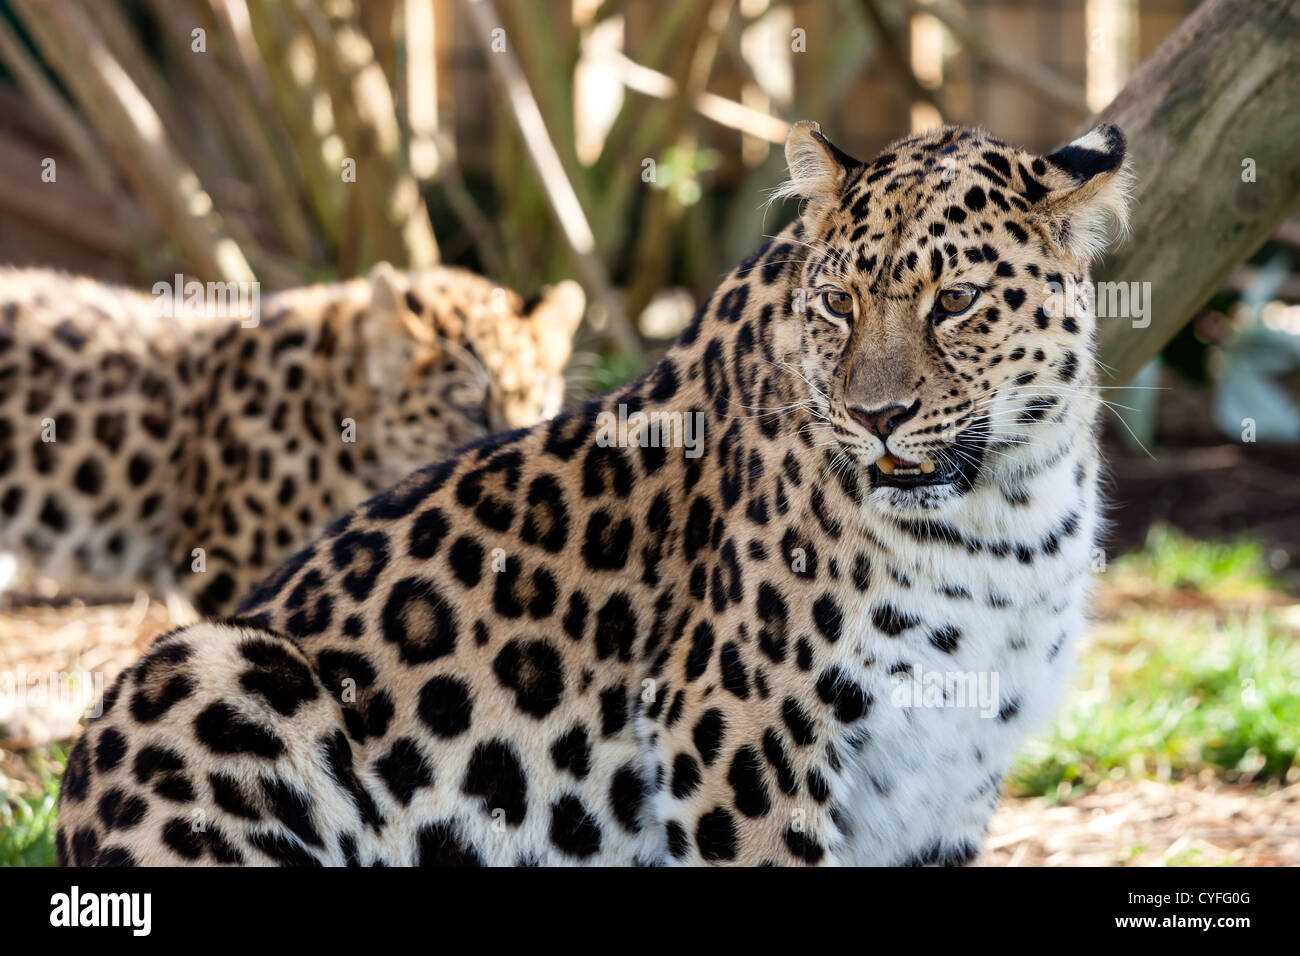 Mother Amur Leopard Protecting Cub in the Background Panthera Pardus Orientalis - Stock Image